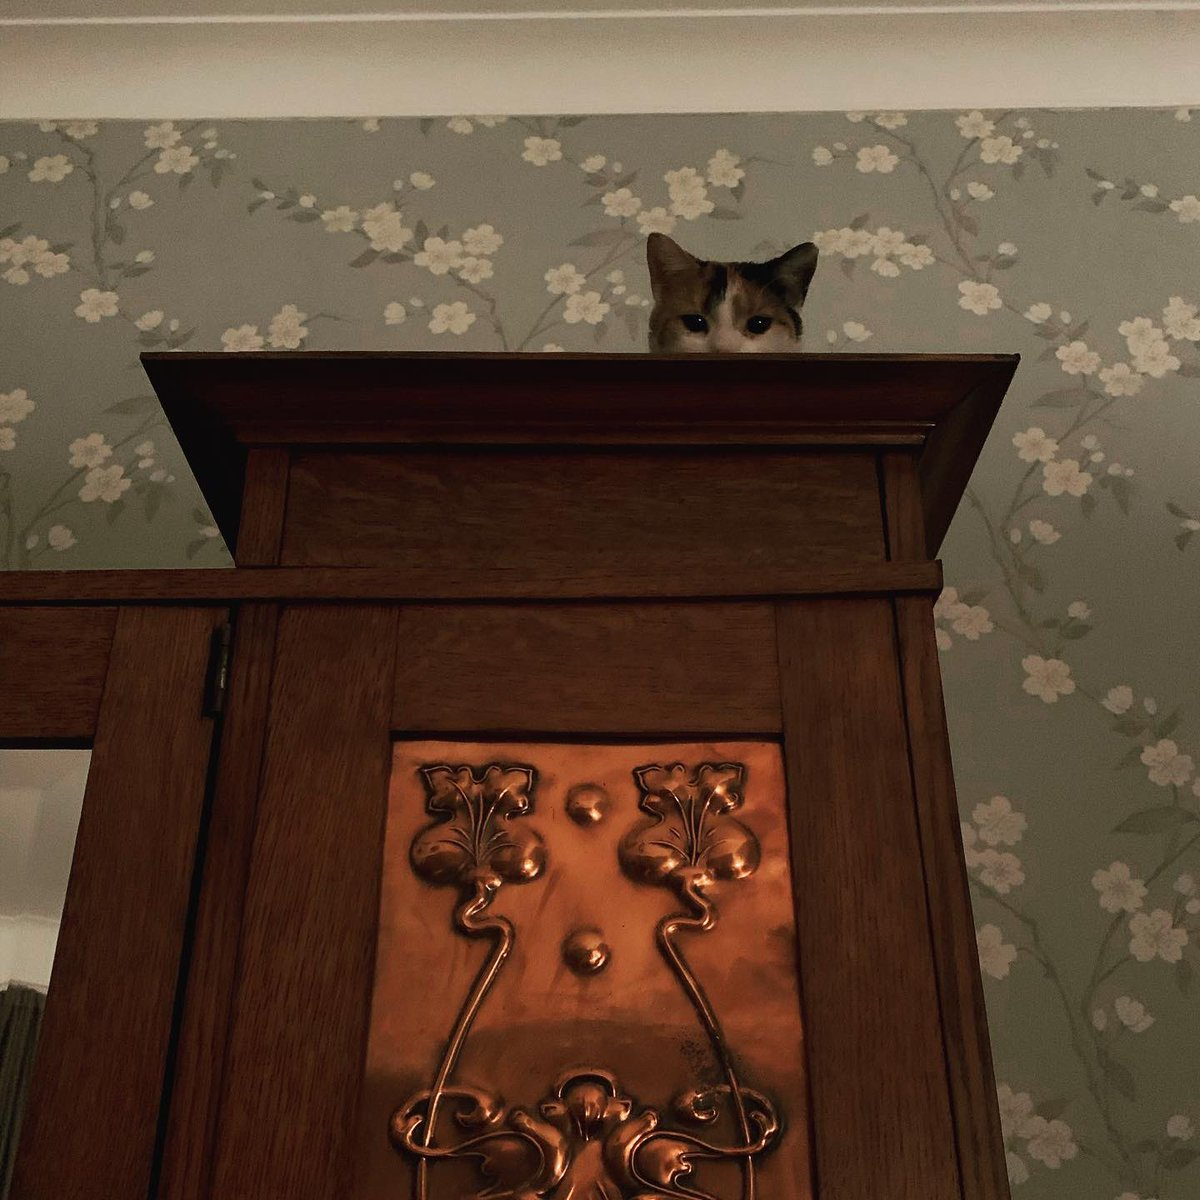 Woke up. Switched on the light.  The cat is always watching.